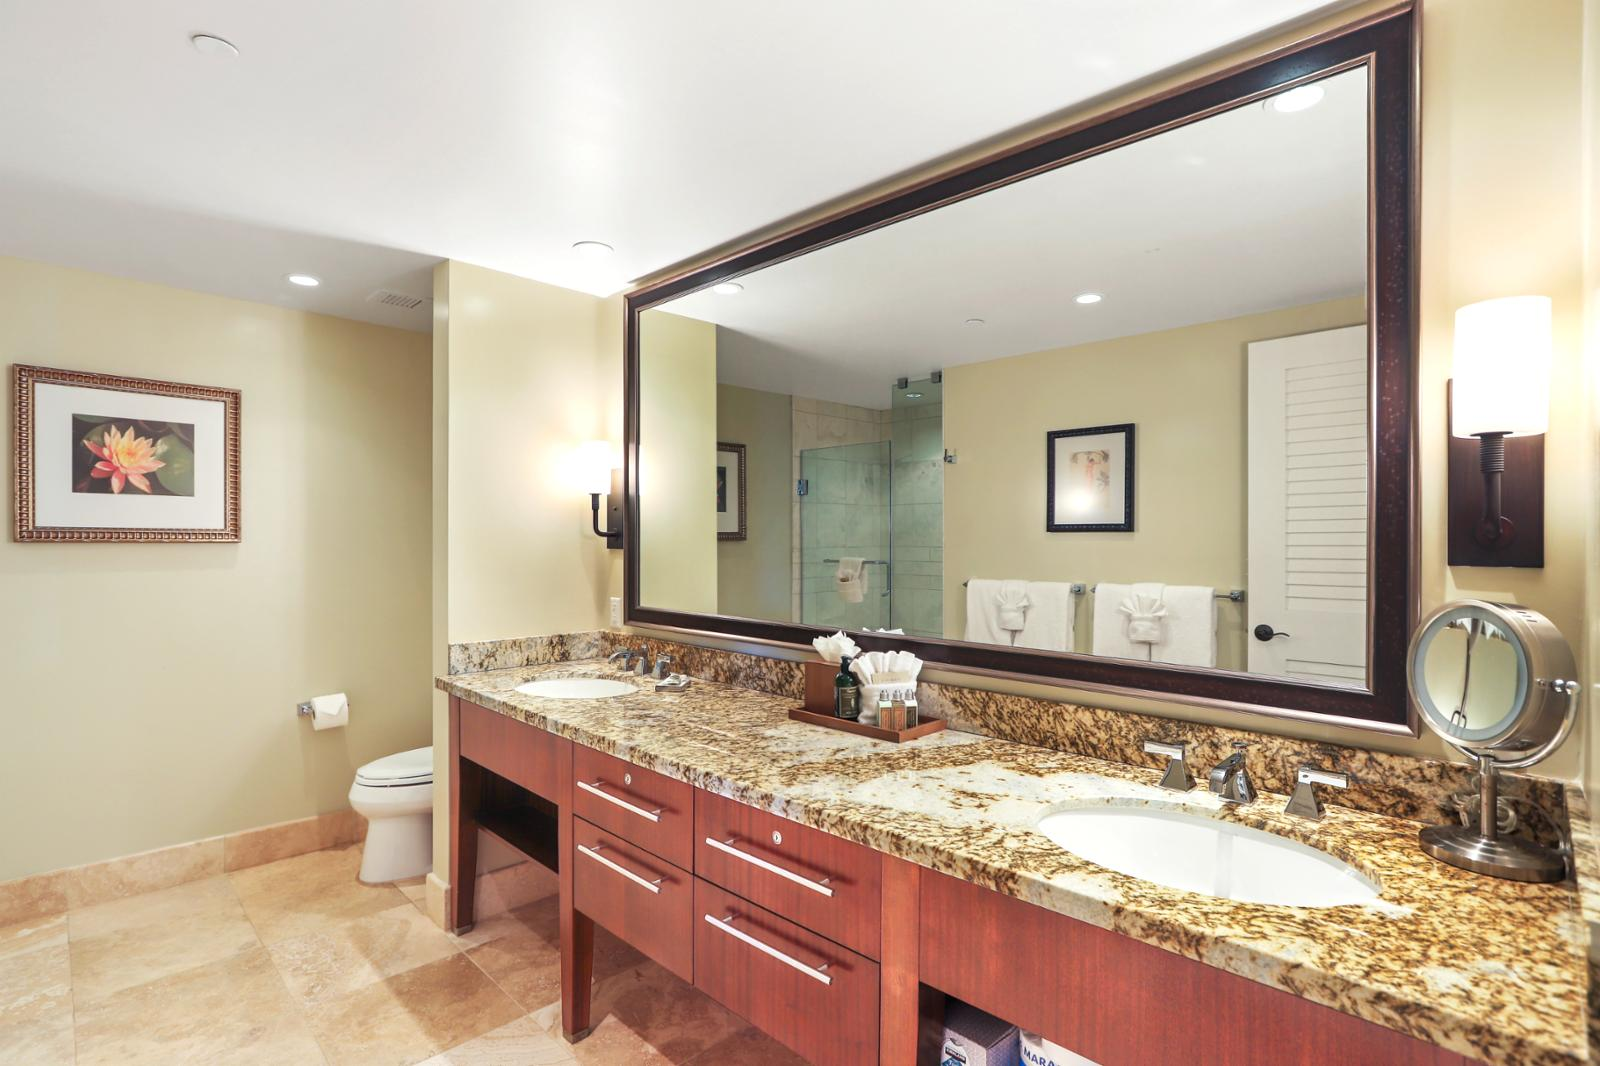 Dual sinks and large layout